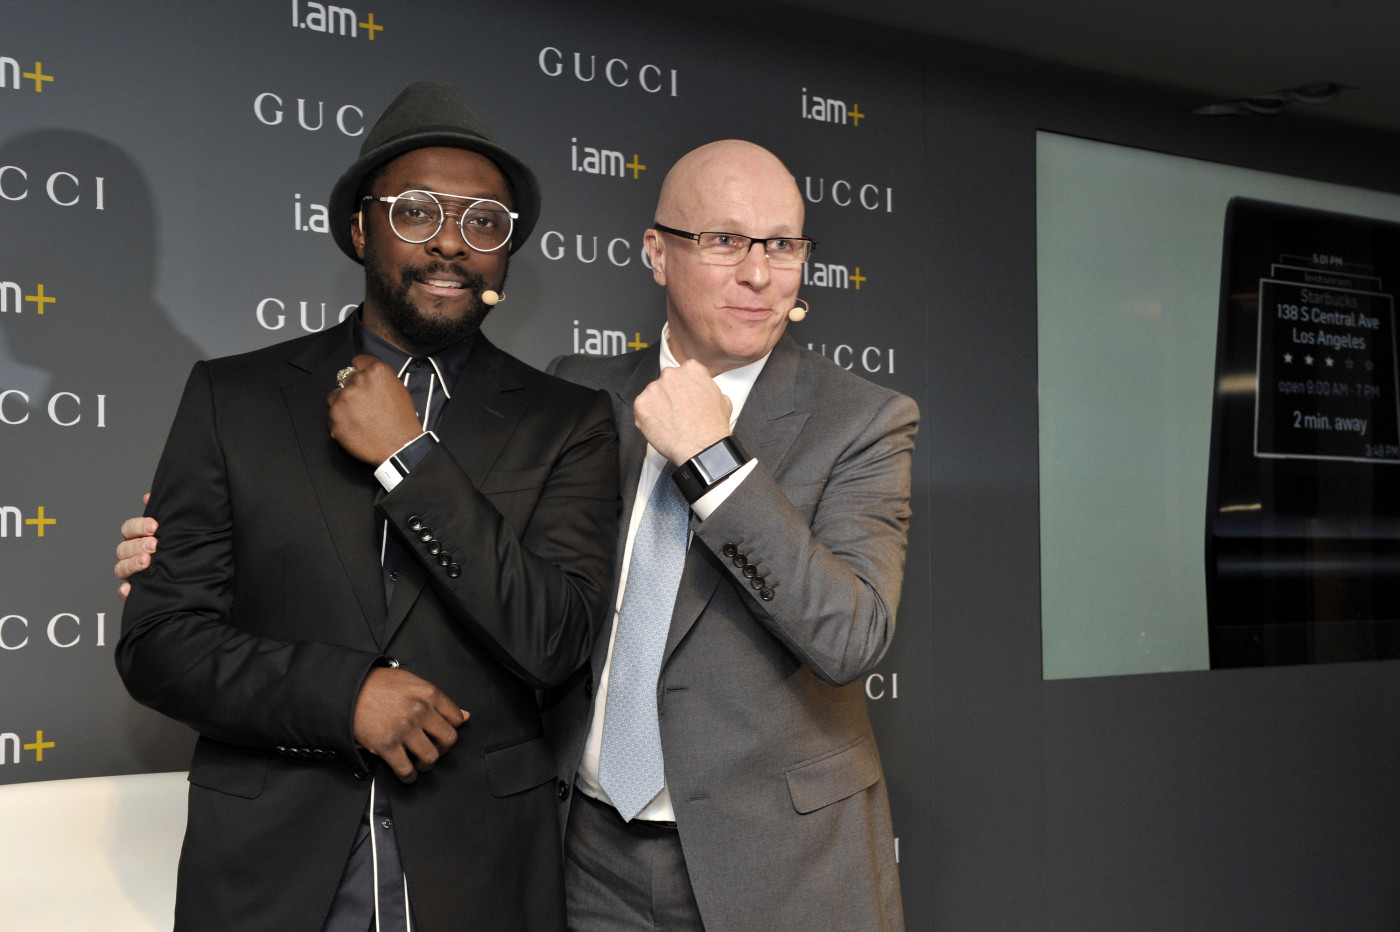 BASEL, SWITZERLAND - MARCH 19:  i.am+ Founder and CEO will.i.am and Gucci Timepieces President and CEO Stephane Linder pose during the Gucci Timepieces press conference on March 19, 2015 in Basel, Switzerland. Gucci Timepieces and the Founder and CEO of i.am+ will.i.am announce a special partnership for the development of innovative wearable device concept on the occasion of the 2015 edition of Baselworld, the watch industry's leading international trade fair.  (Photo by The Image Gate/The Image Gate)